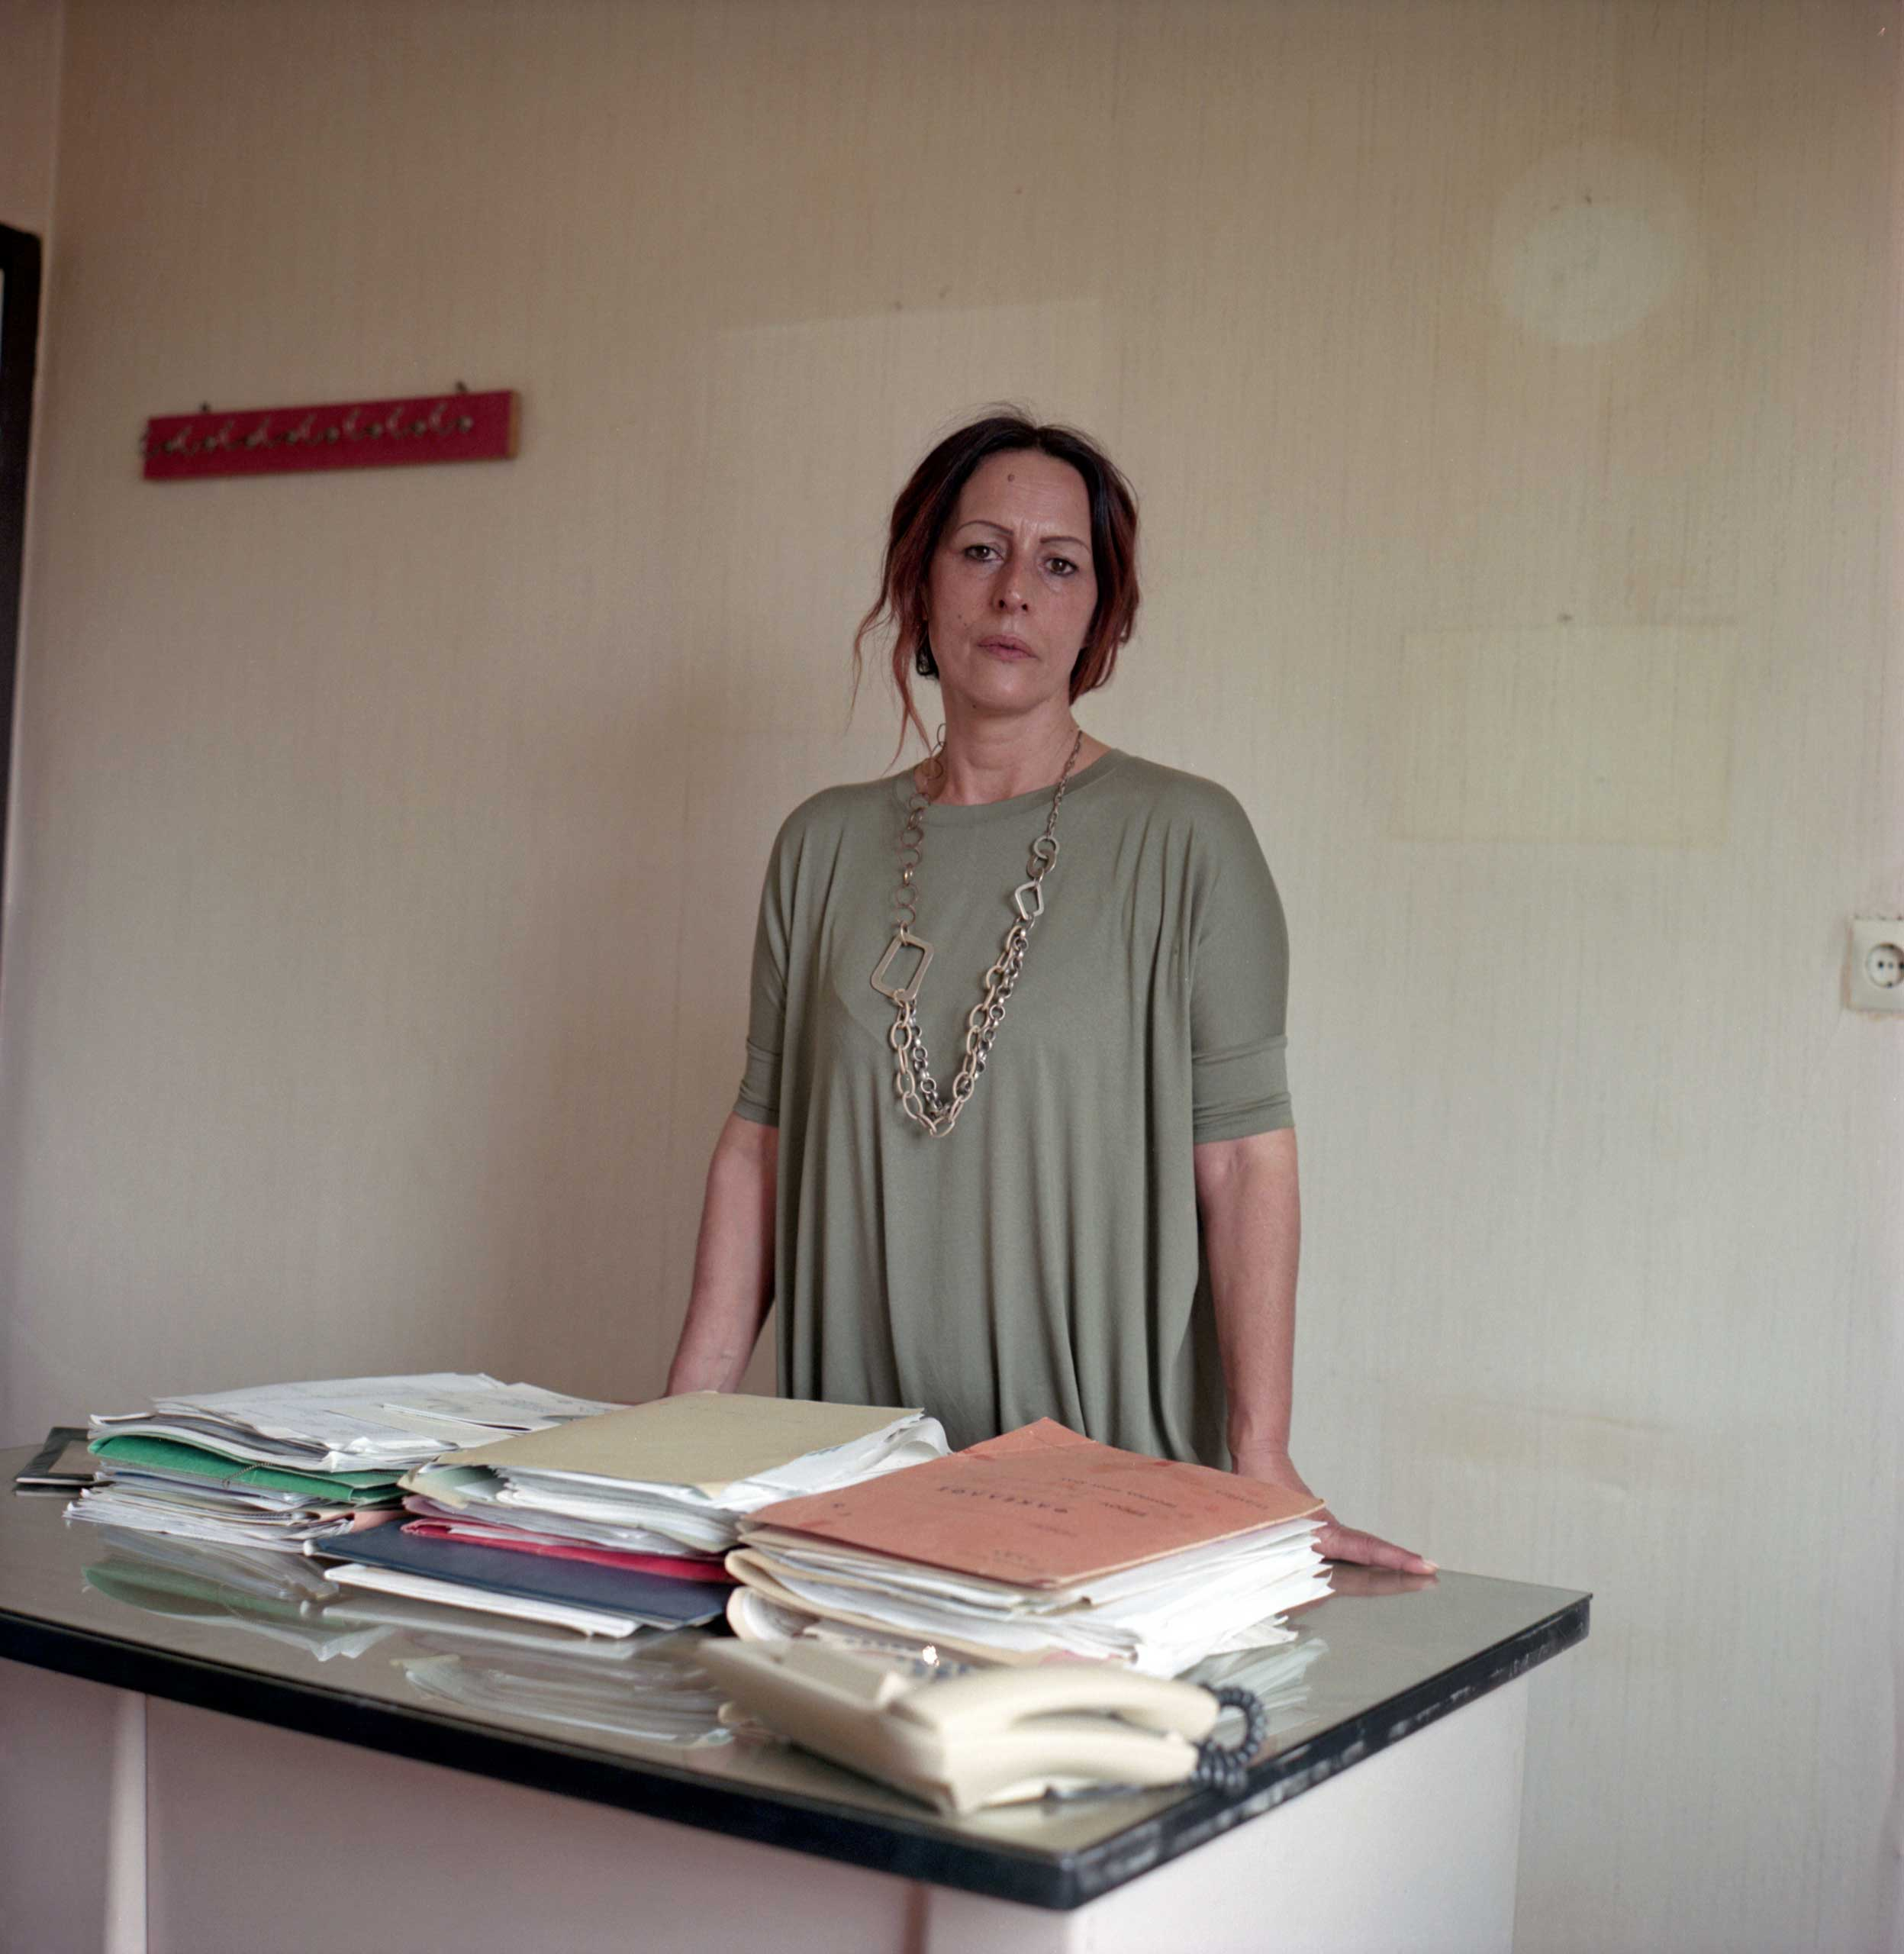 <b>Xauthoula Soupli, mayor of Idomeni</b>                                   Xauthoula Soupli was elected Mayor of Idomeni two years ago. She says she is overwhelmed to see more than 10,000 people in a village with a local population of 140. Her office has recently been broken into, with chairs and papers used to burn for firewood. Idomeni, Greece, April 2016.